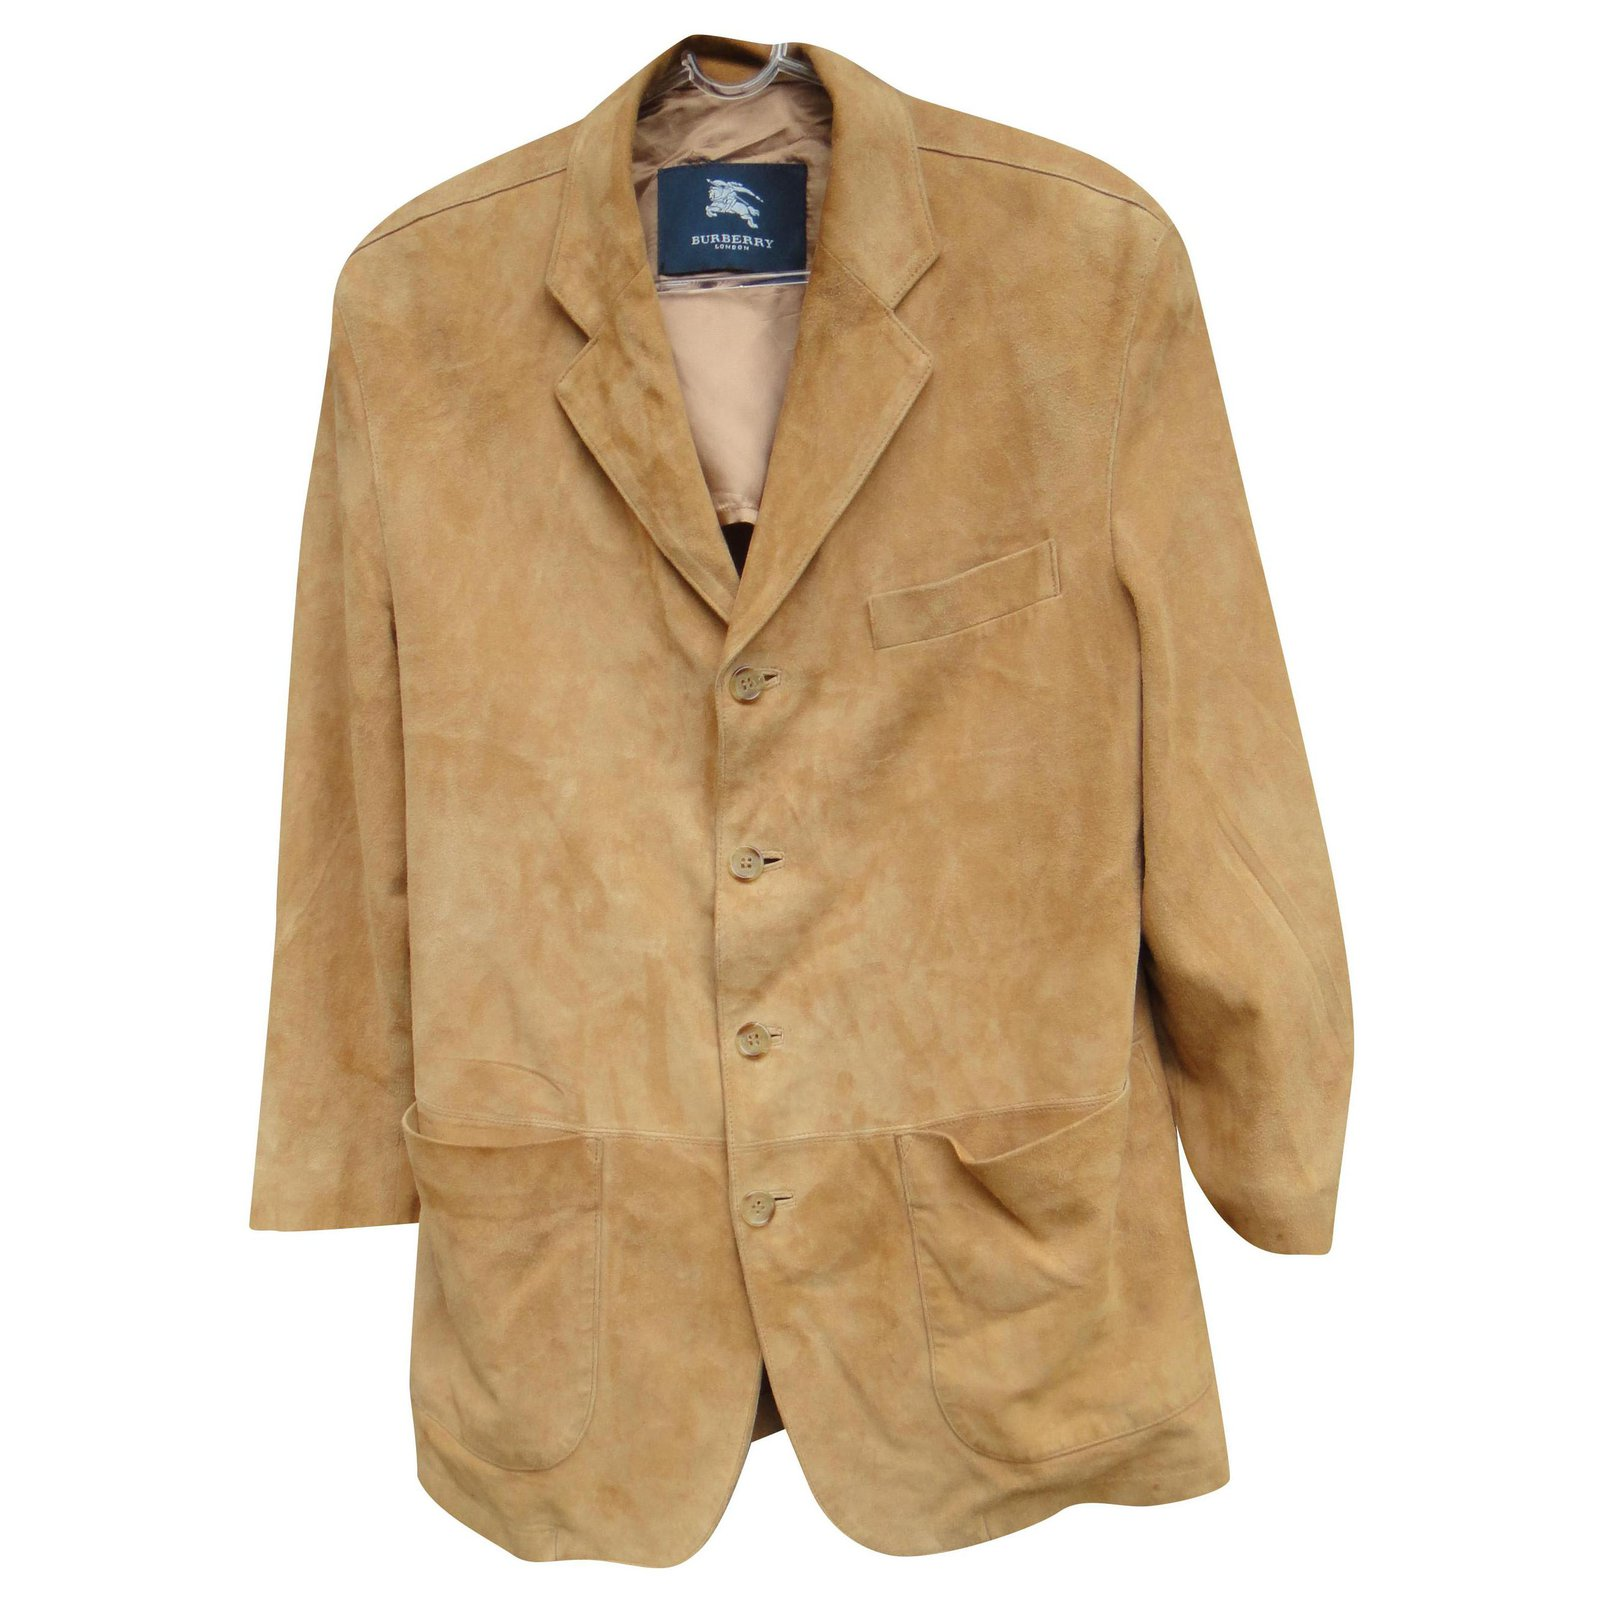 burberry suede jacket